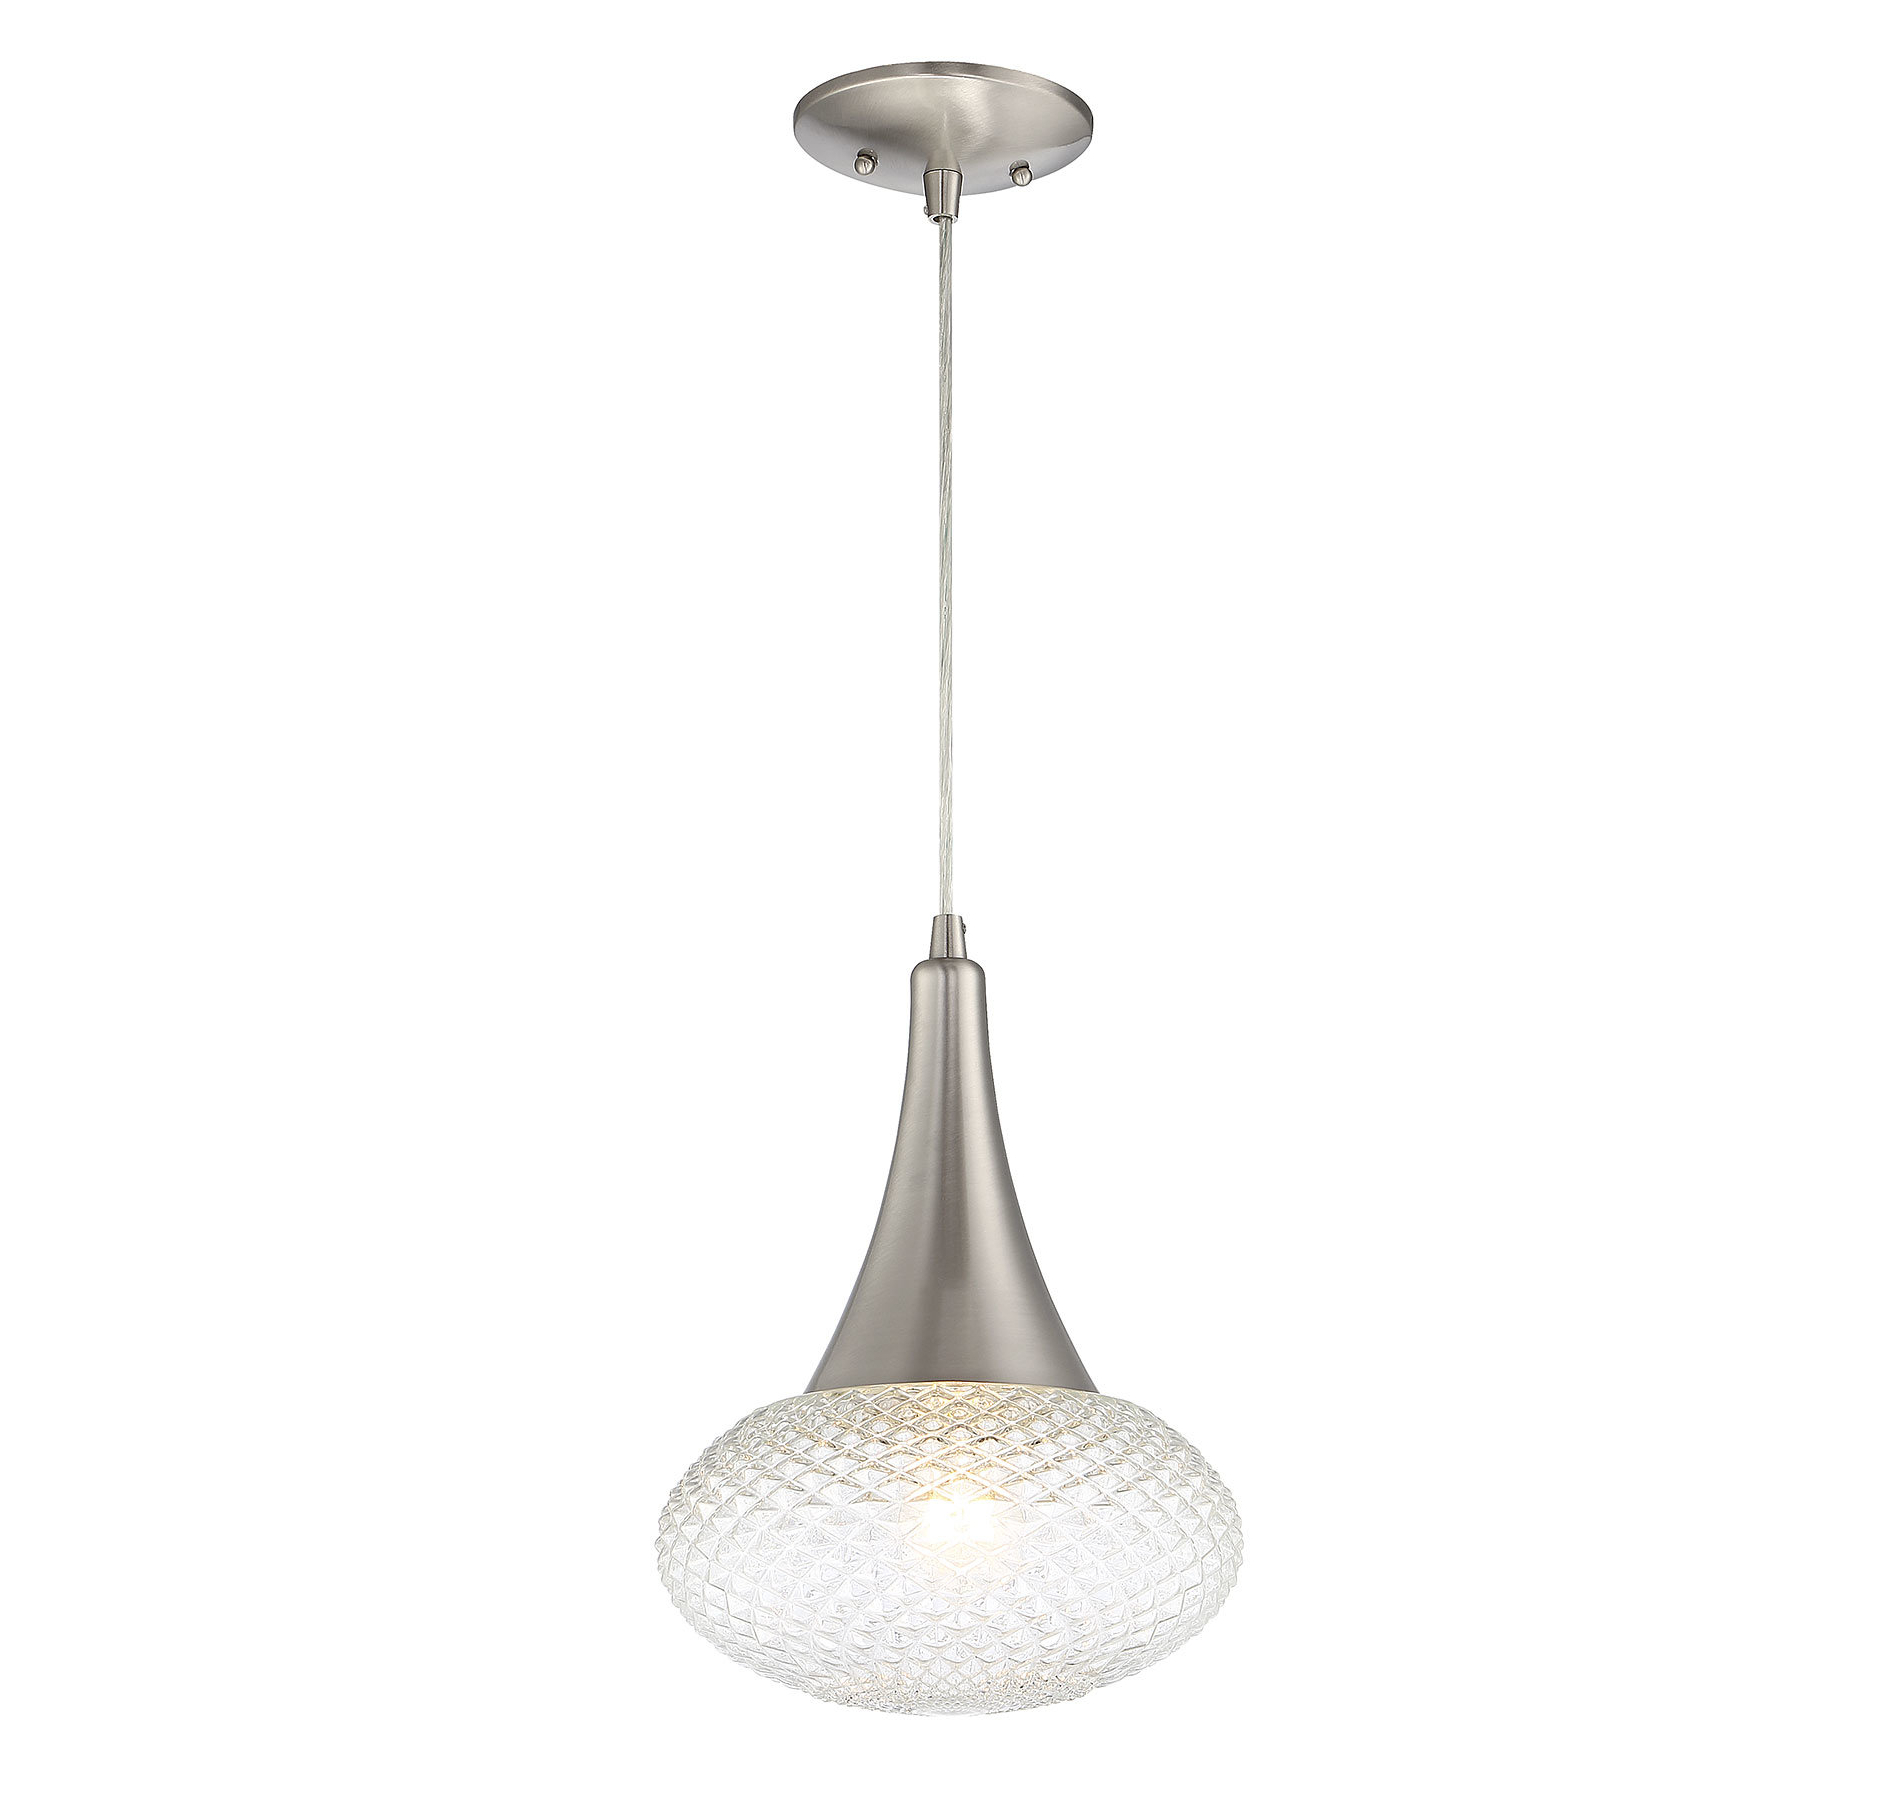 Abordale 1 Light Single Dome Pendants Pertaining To Fashionable Carly 1 Light Single Teardrop Pendant (View 20 of 25)